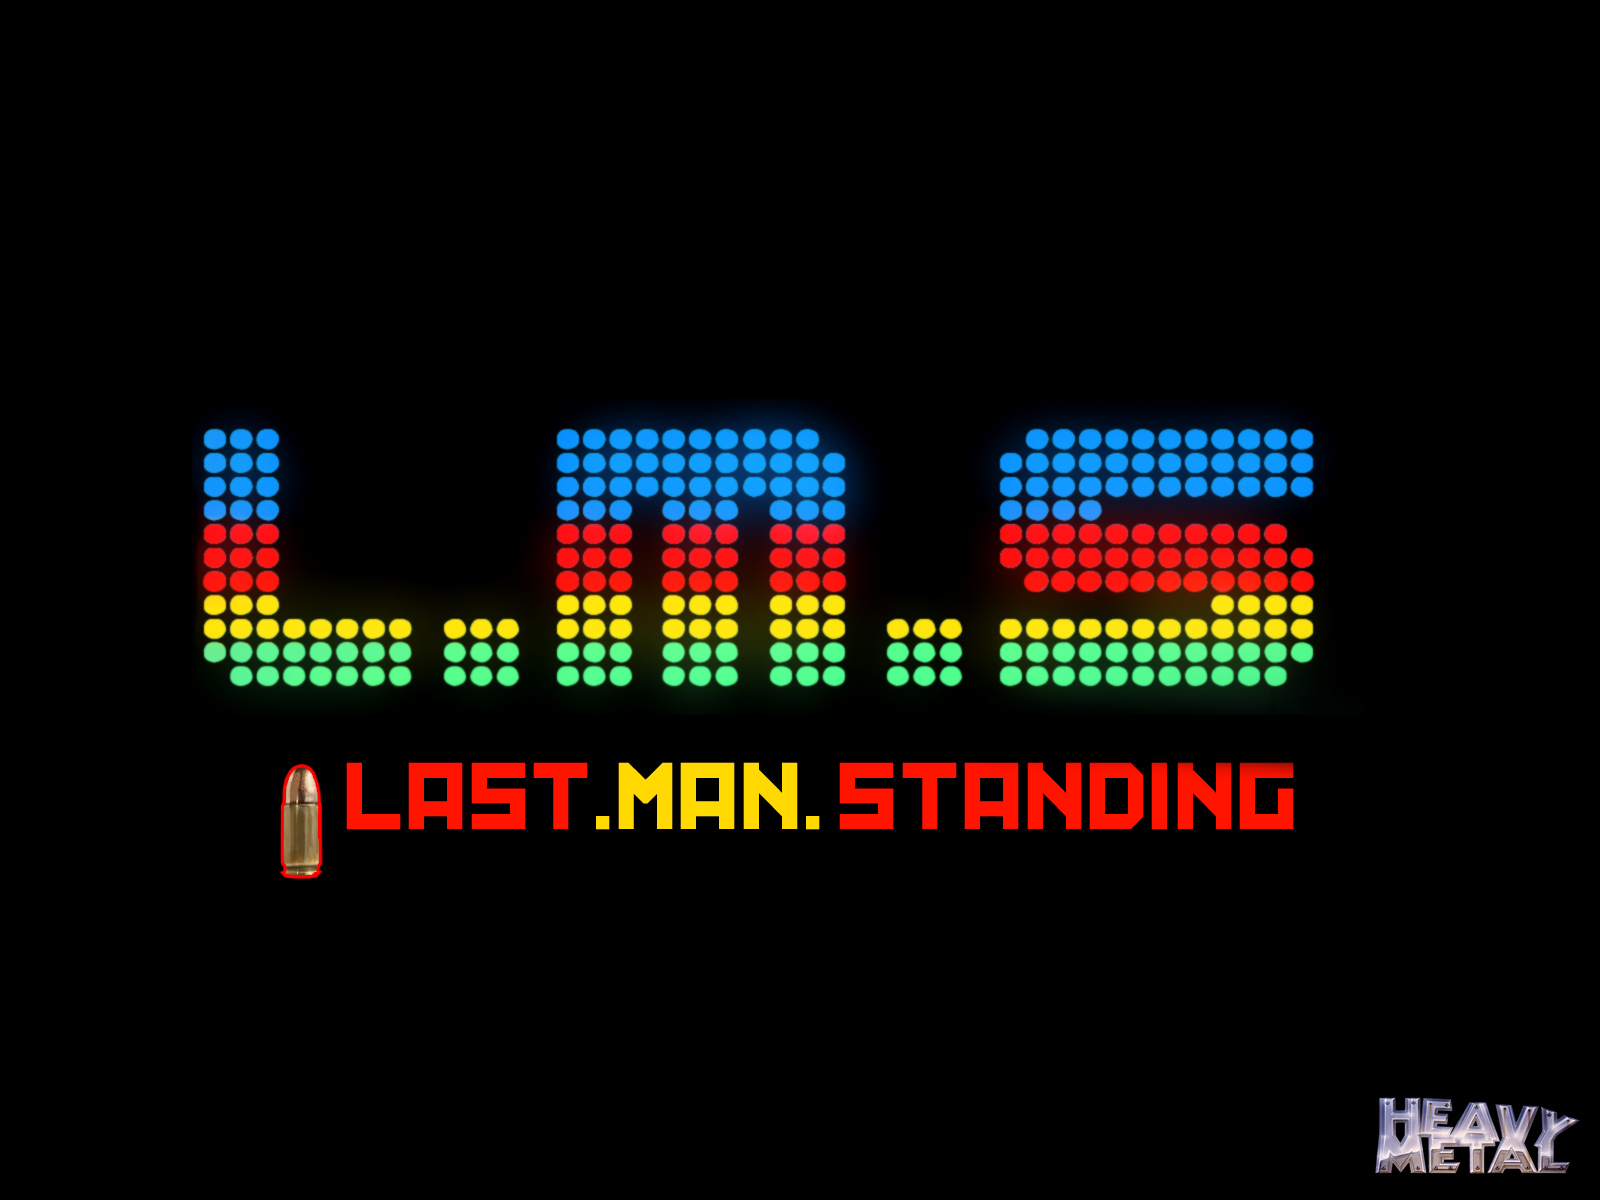 Last LMS logos logo HD Wallpaper